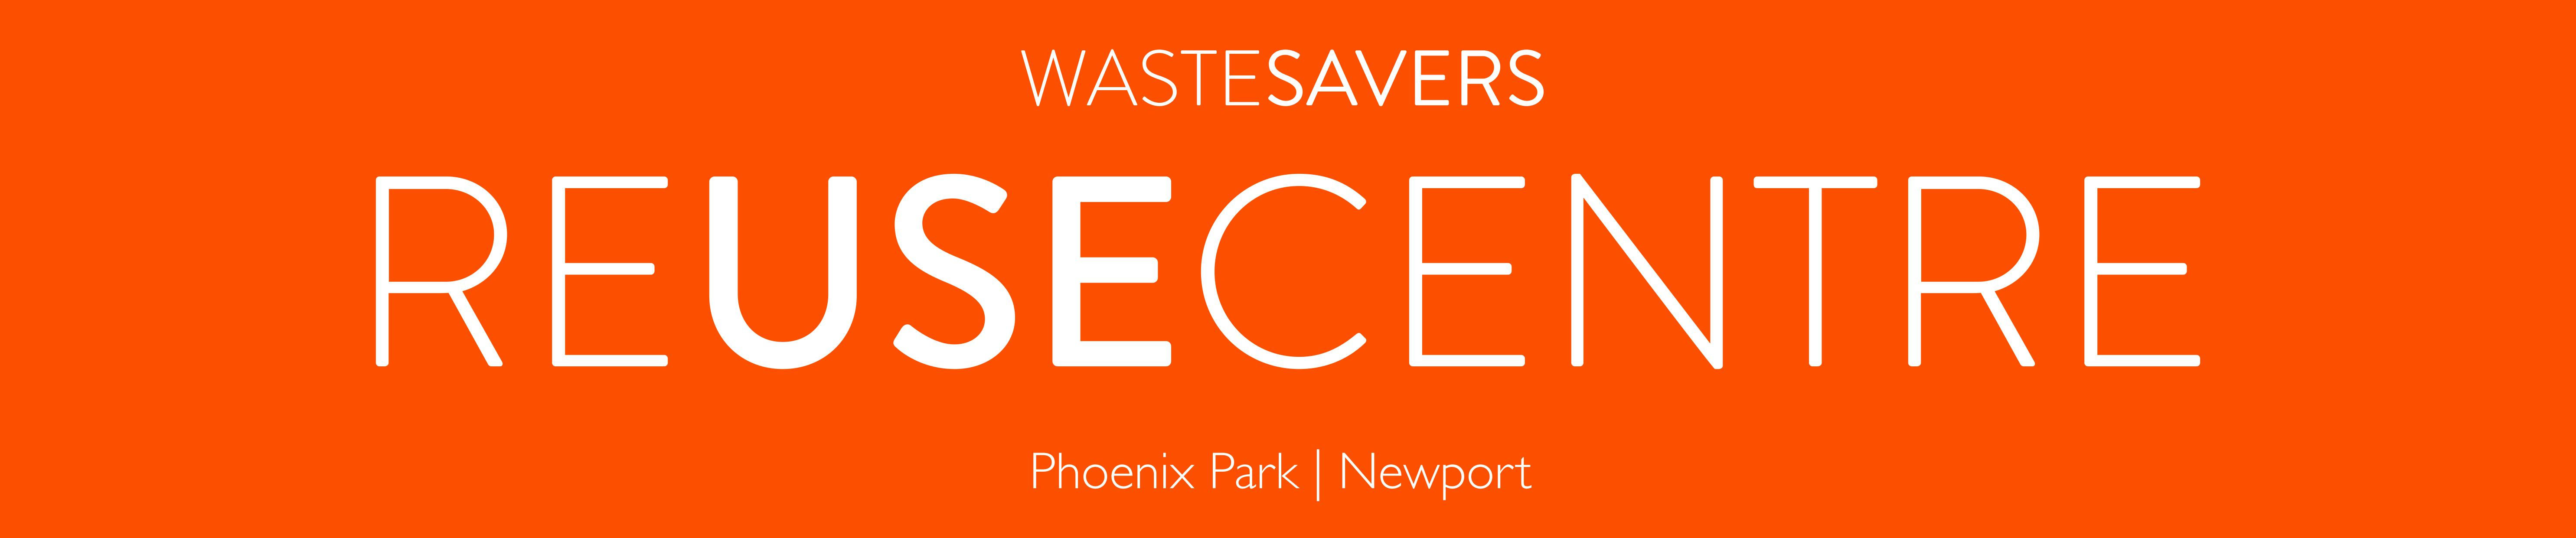 reuse centre logo orange